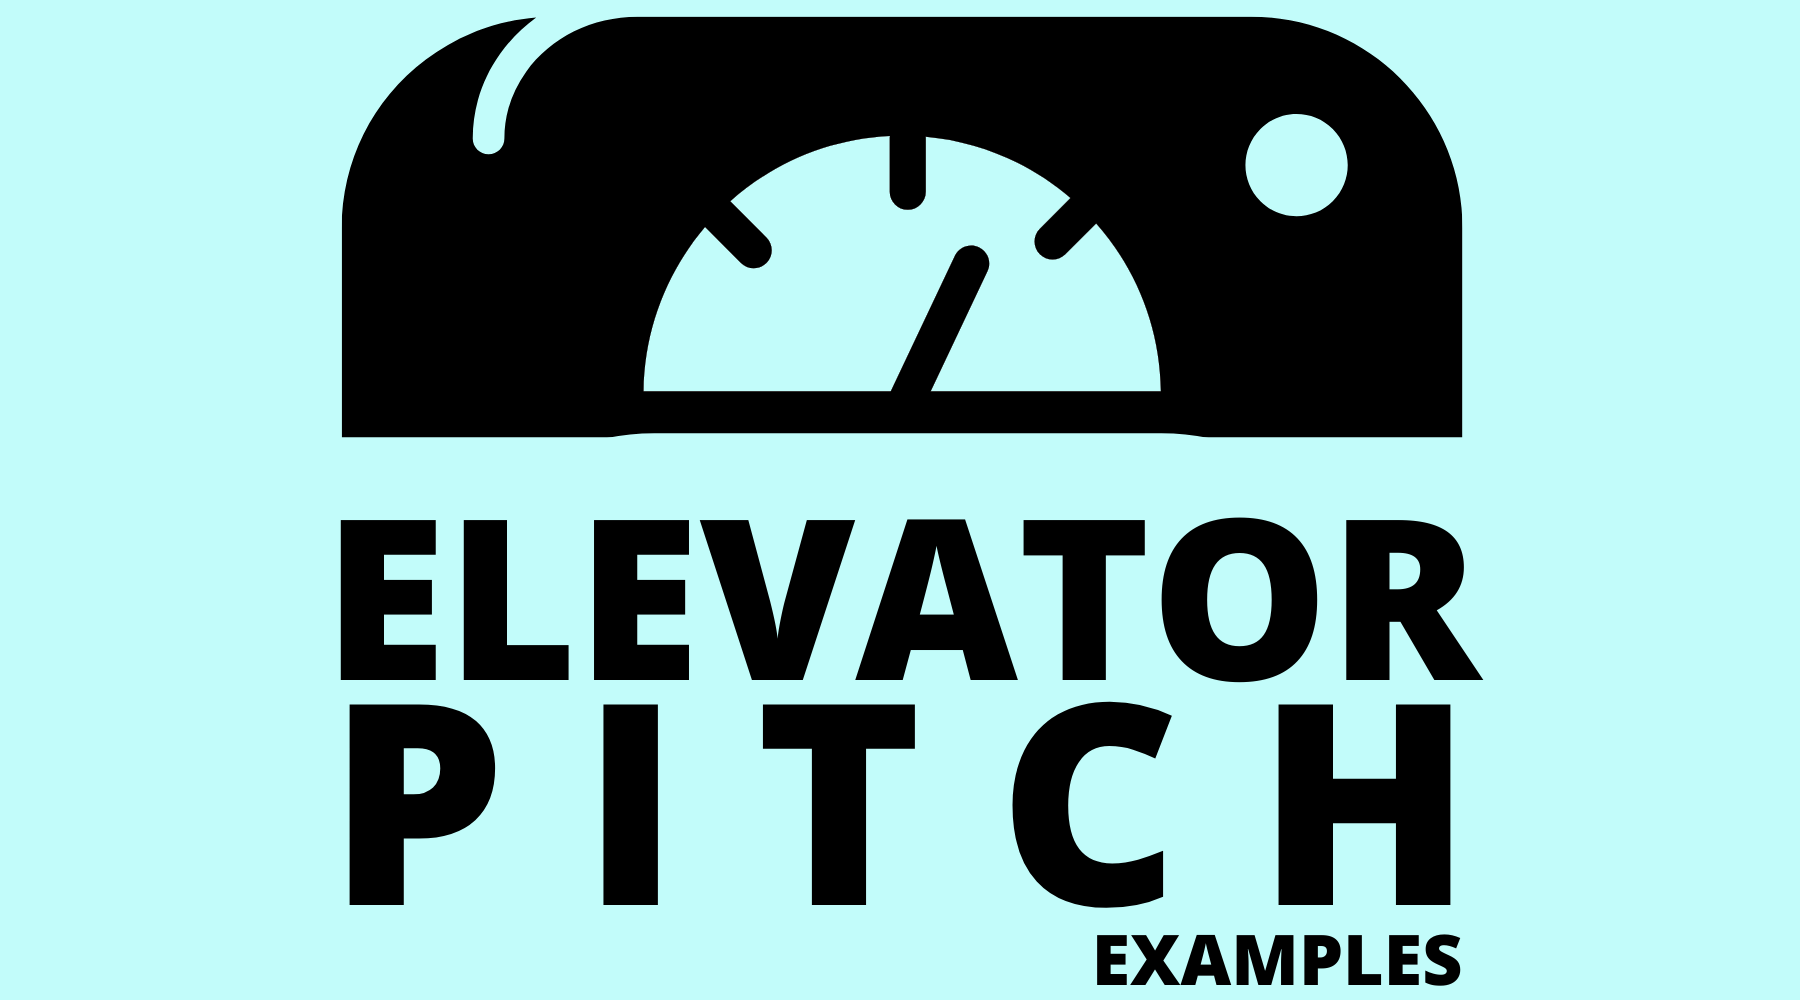 Examples of Elevator pitches and How It Can Prove to Be a Game Changer